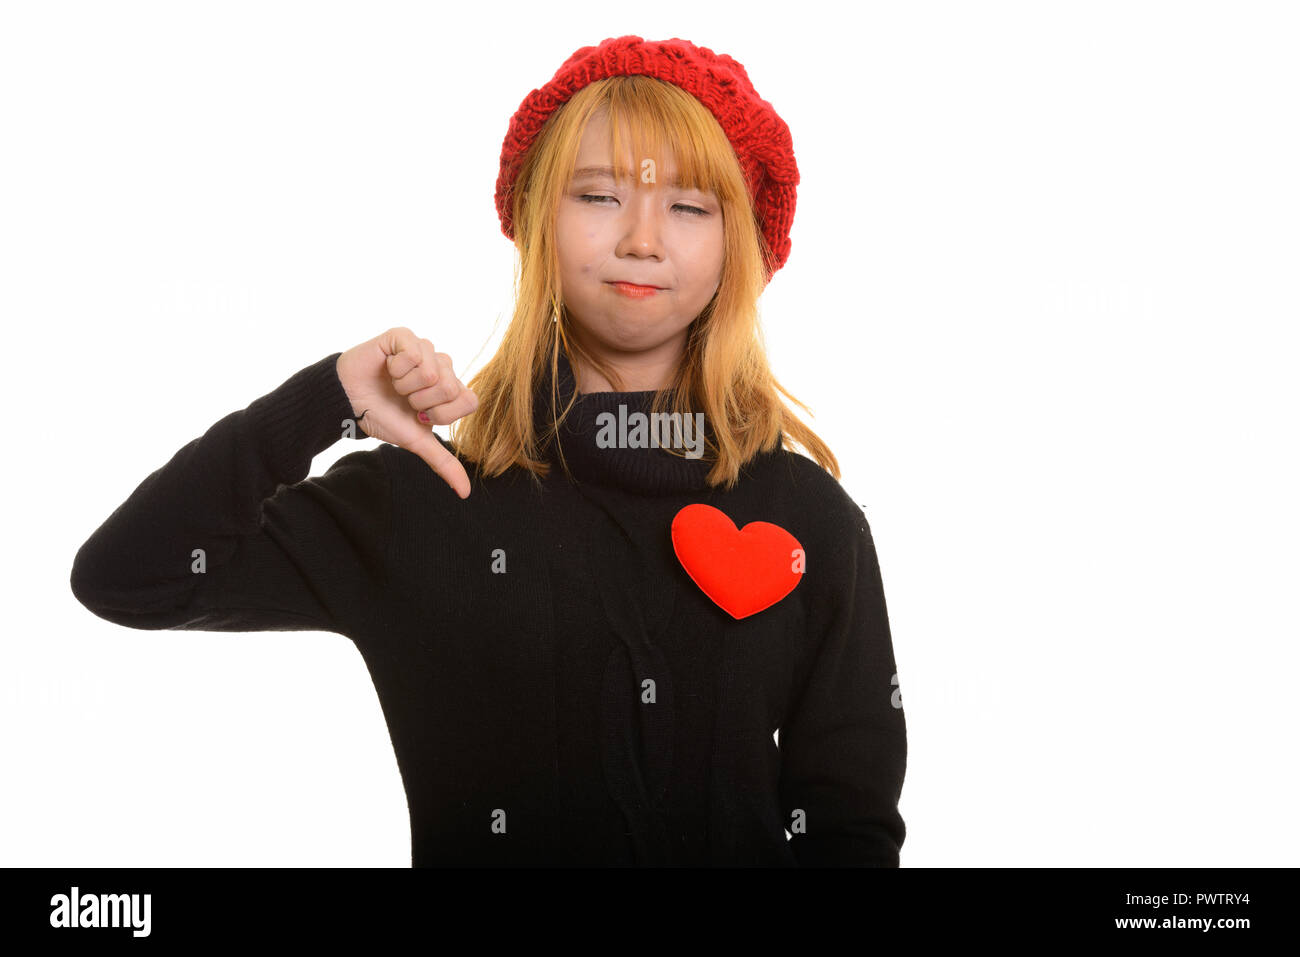 Young cute Asian woman giving thumb down with red heart on chest - Stock Image